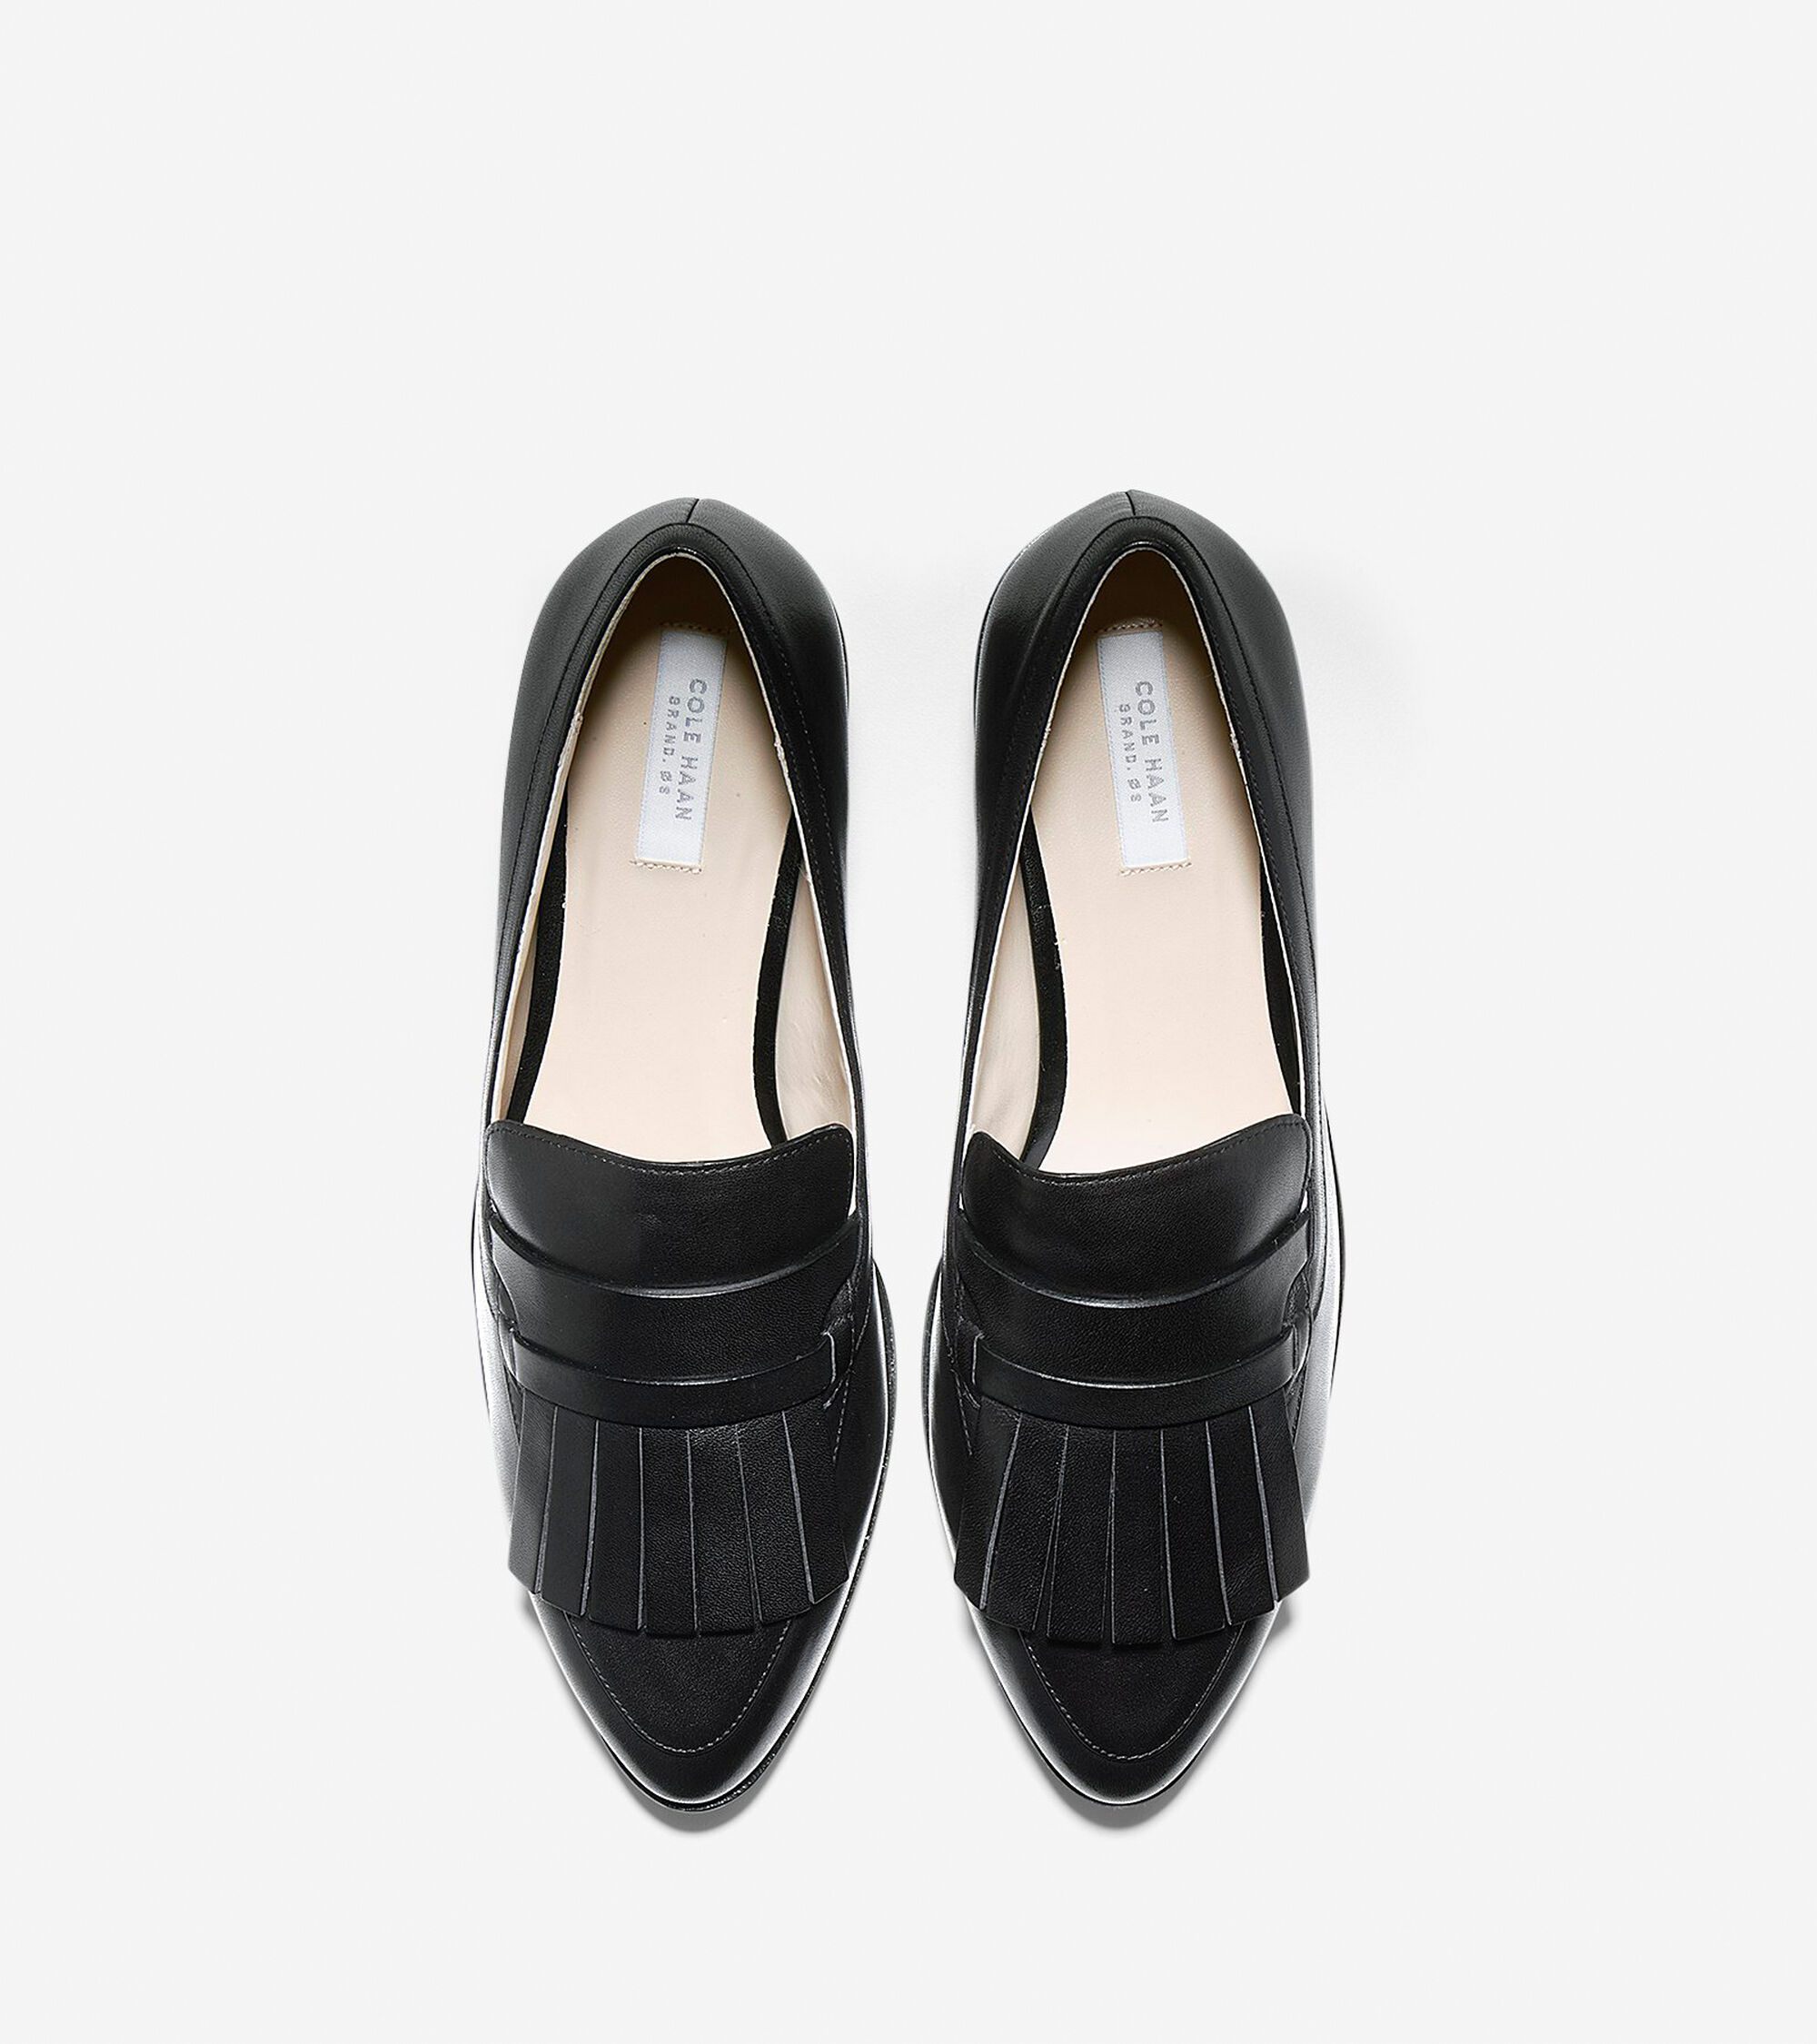 fee64c20c59 Women s Margarite Loafers in Black Leather